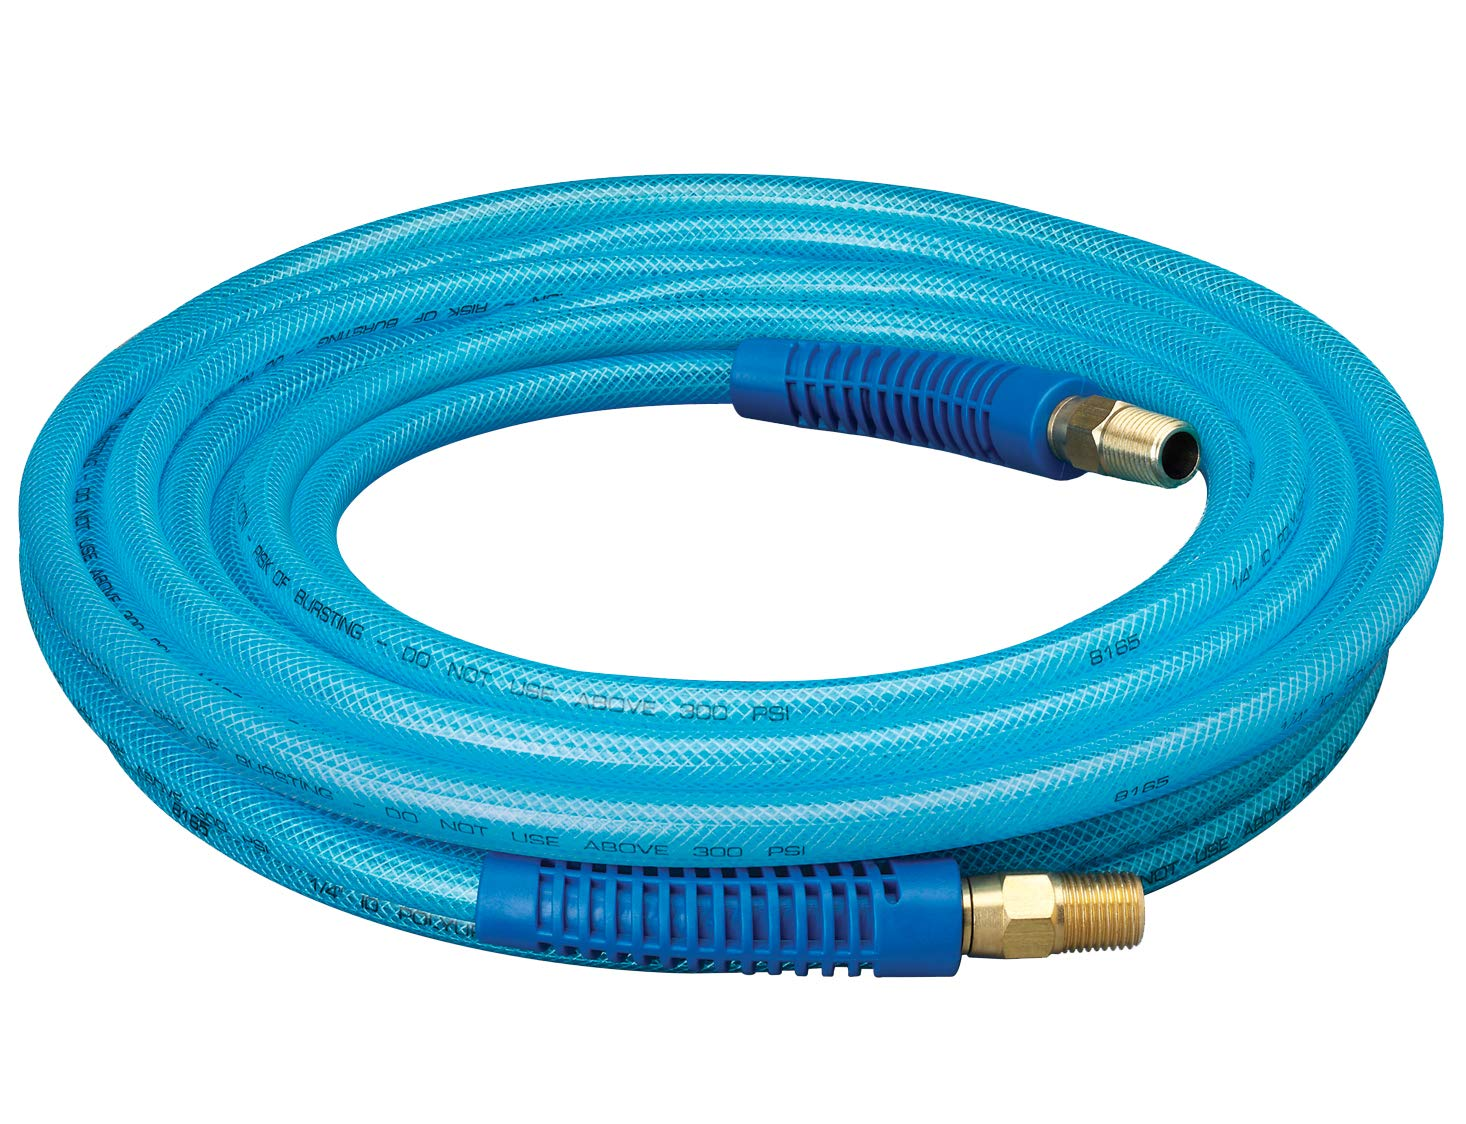 """Plews & Edelmann Amflo 12-25E Polyurethane Air Hose - Non-marring, Smooth Finish, Easy to carry, Lightweight, Cold Weather Flexible, Great Indoors or Out, 1/4"""" X 25', Blue, 25 ft"""